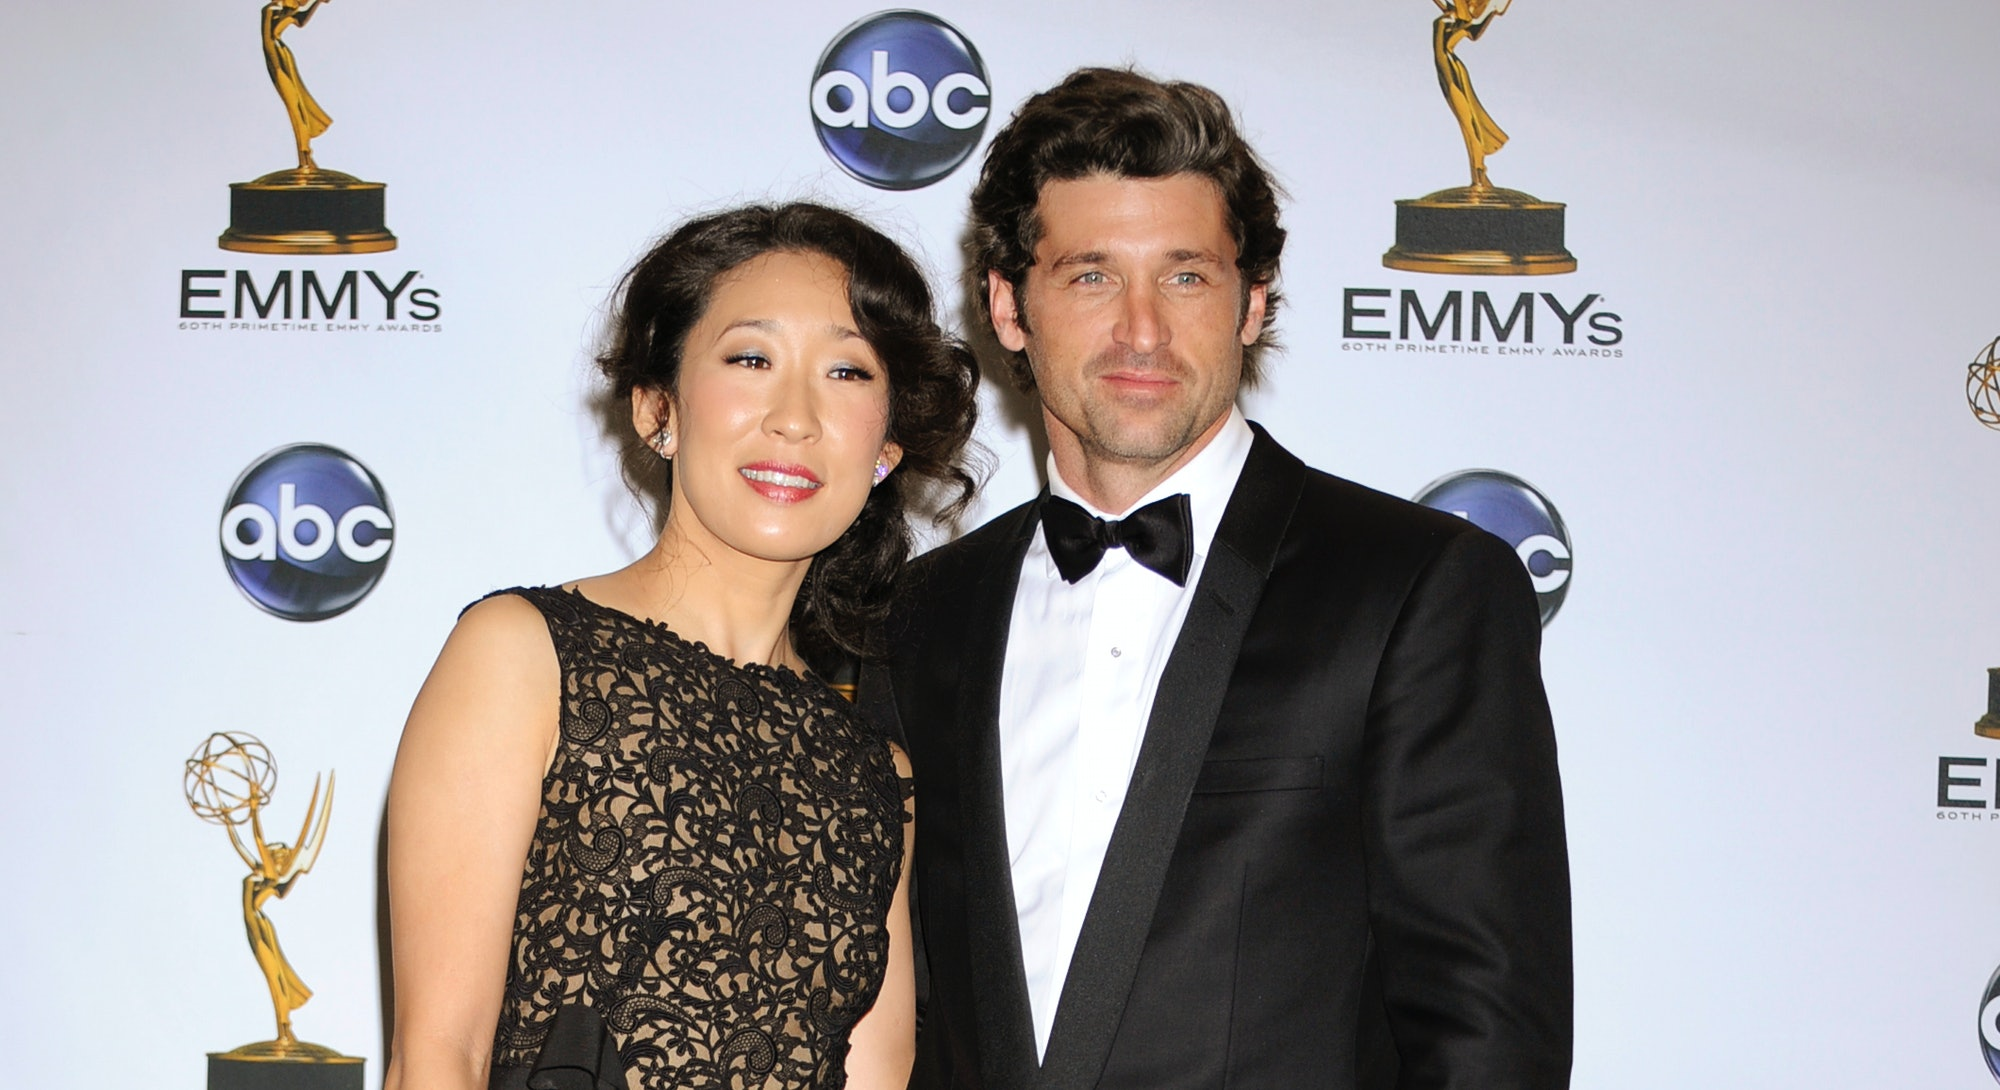 Actress Sandra Oh and actor Patrick Dempsey in the press room at the 60th Primetime Emmy�� Awards held at the Nokia Theatre. Tuxedo by Versace. (Photo by Frank Trapper/Corbis via Getty Images)